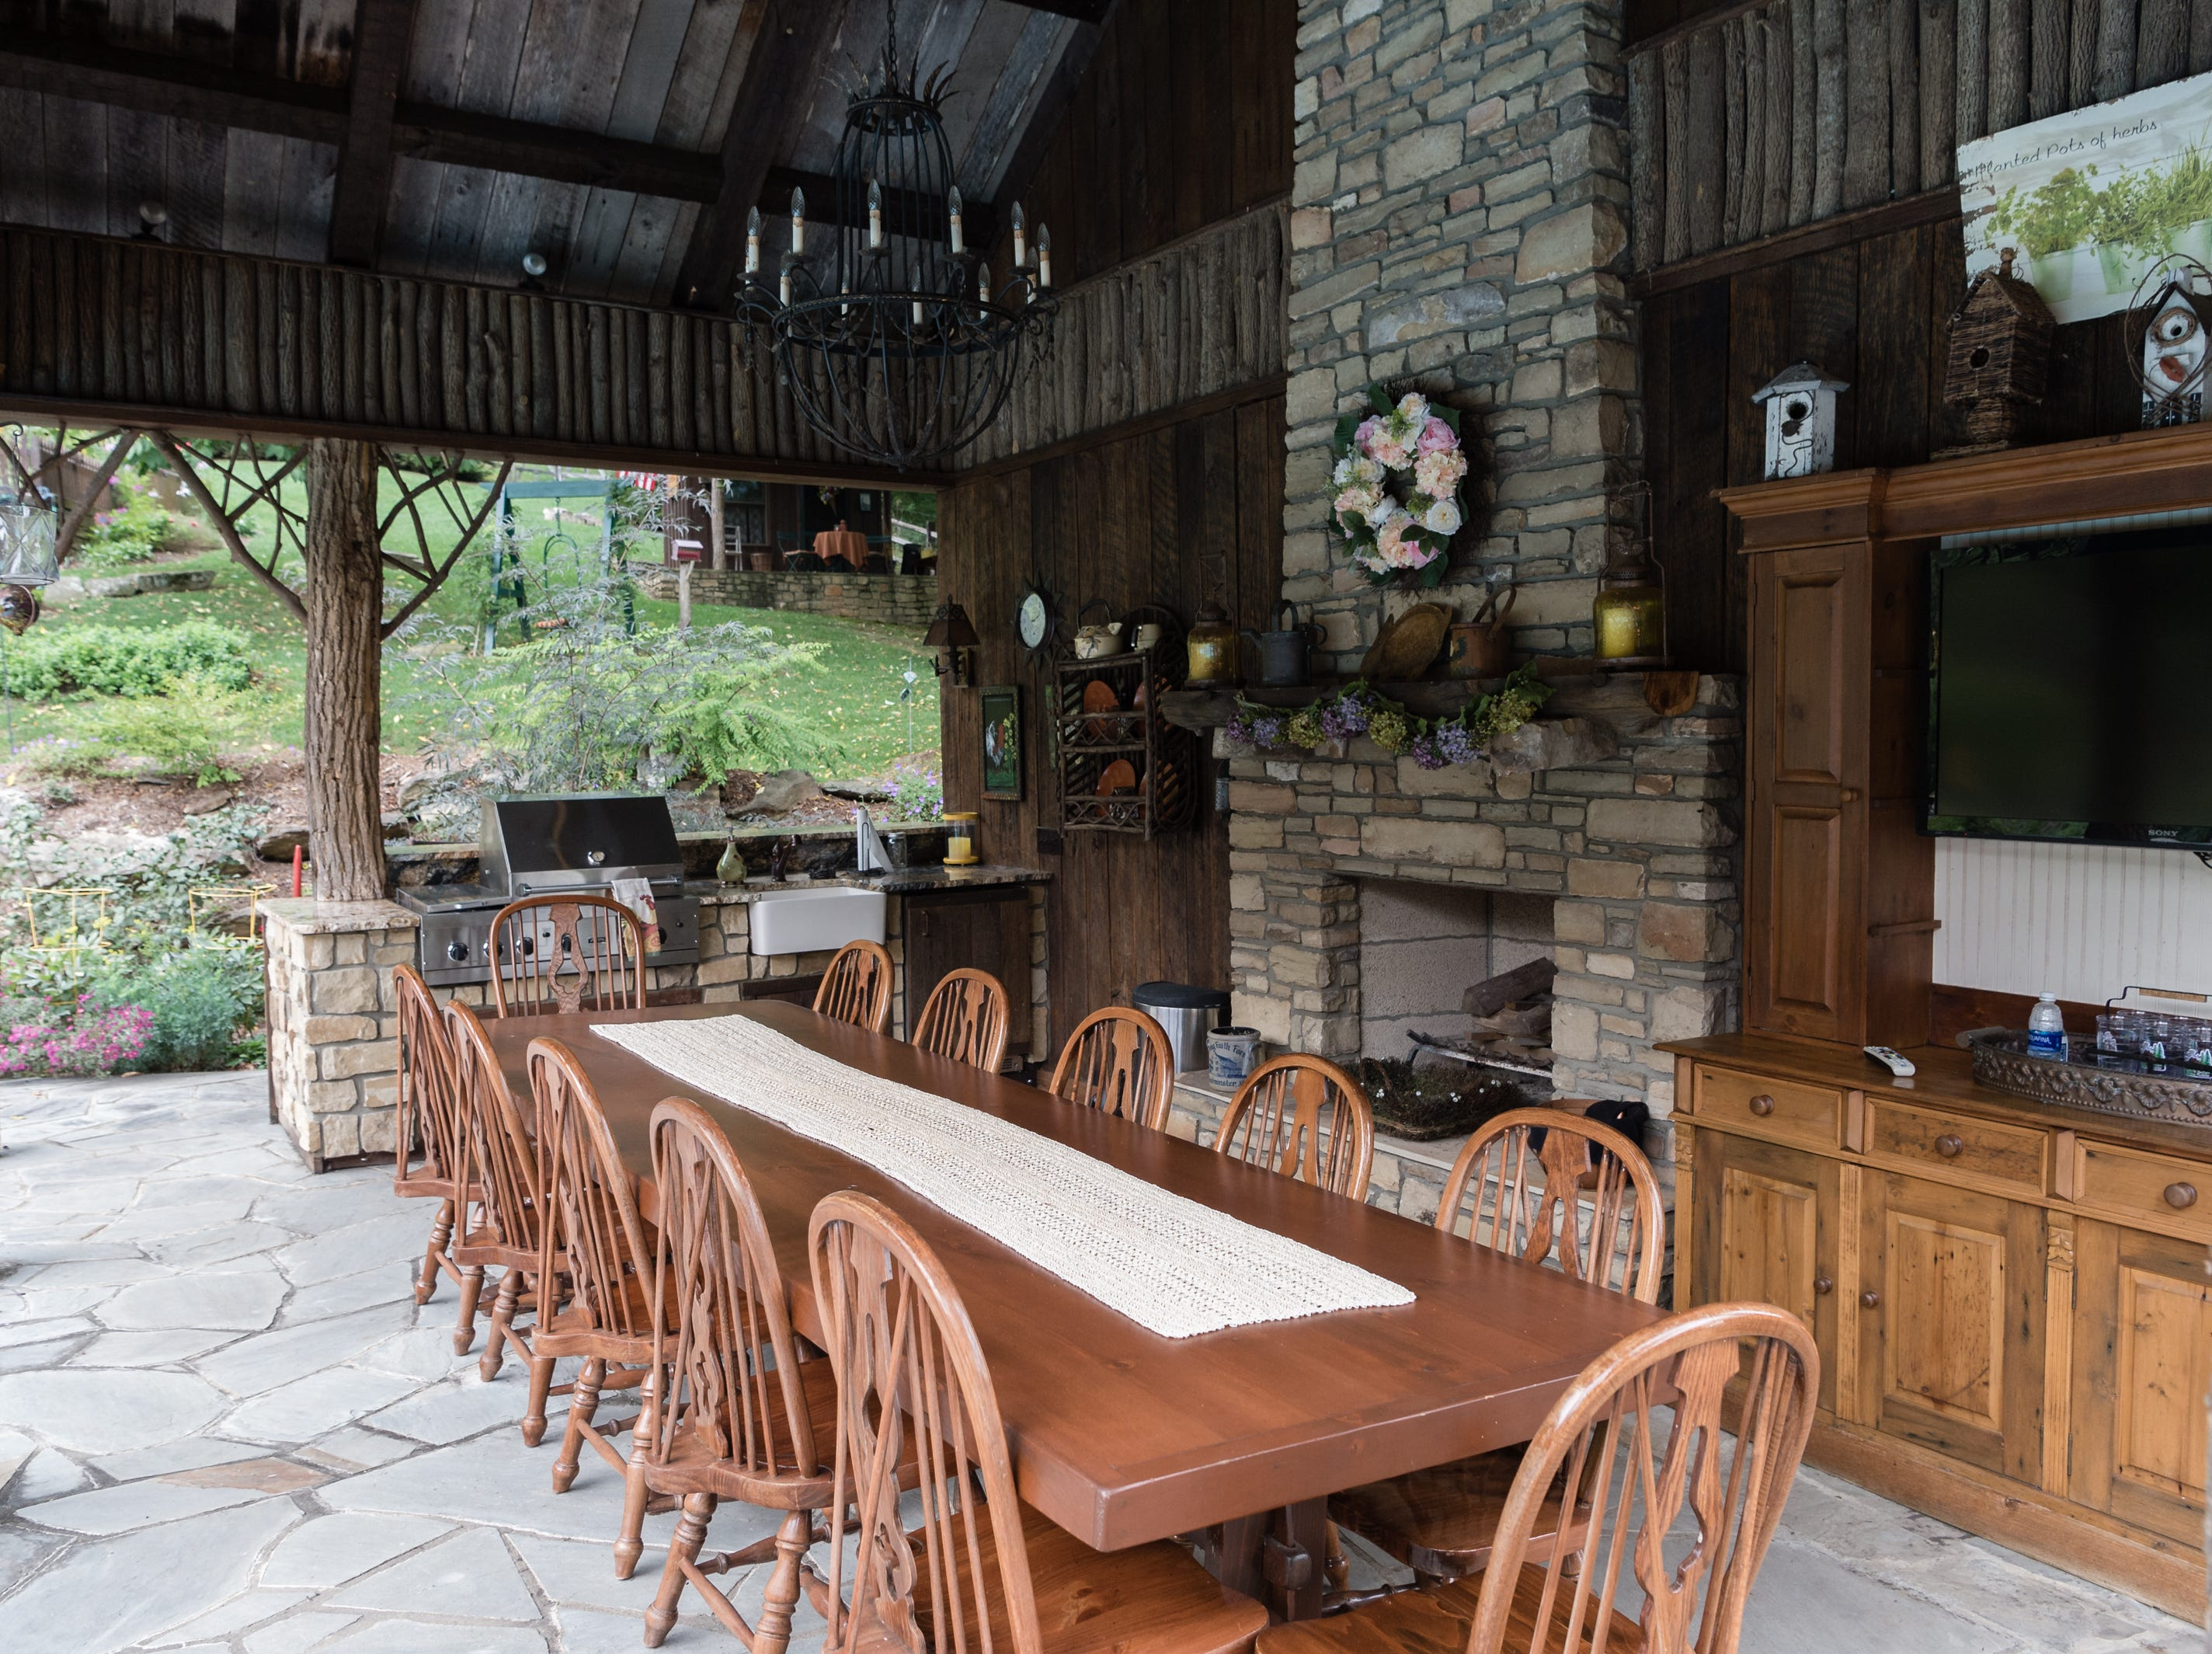 A covered outdoor dining area in the backyard of Dan and Belle Fangmeyer's log cabin in Waynesville.